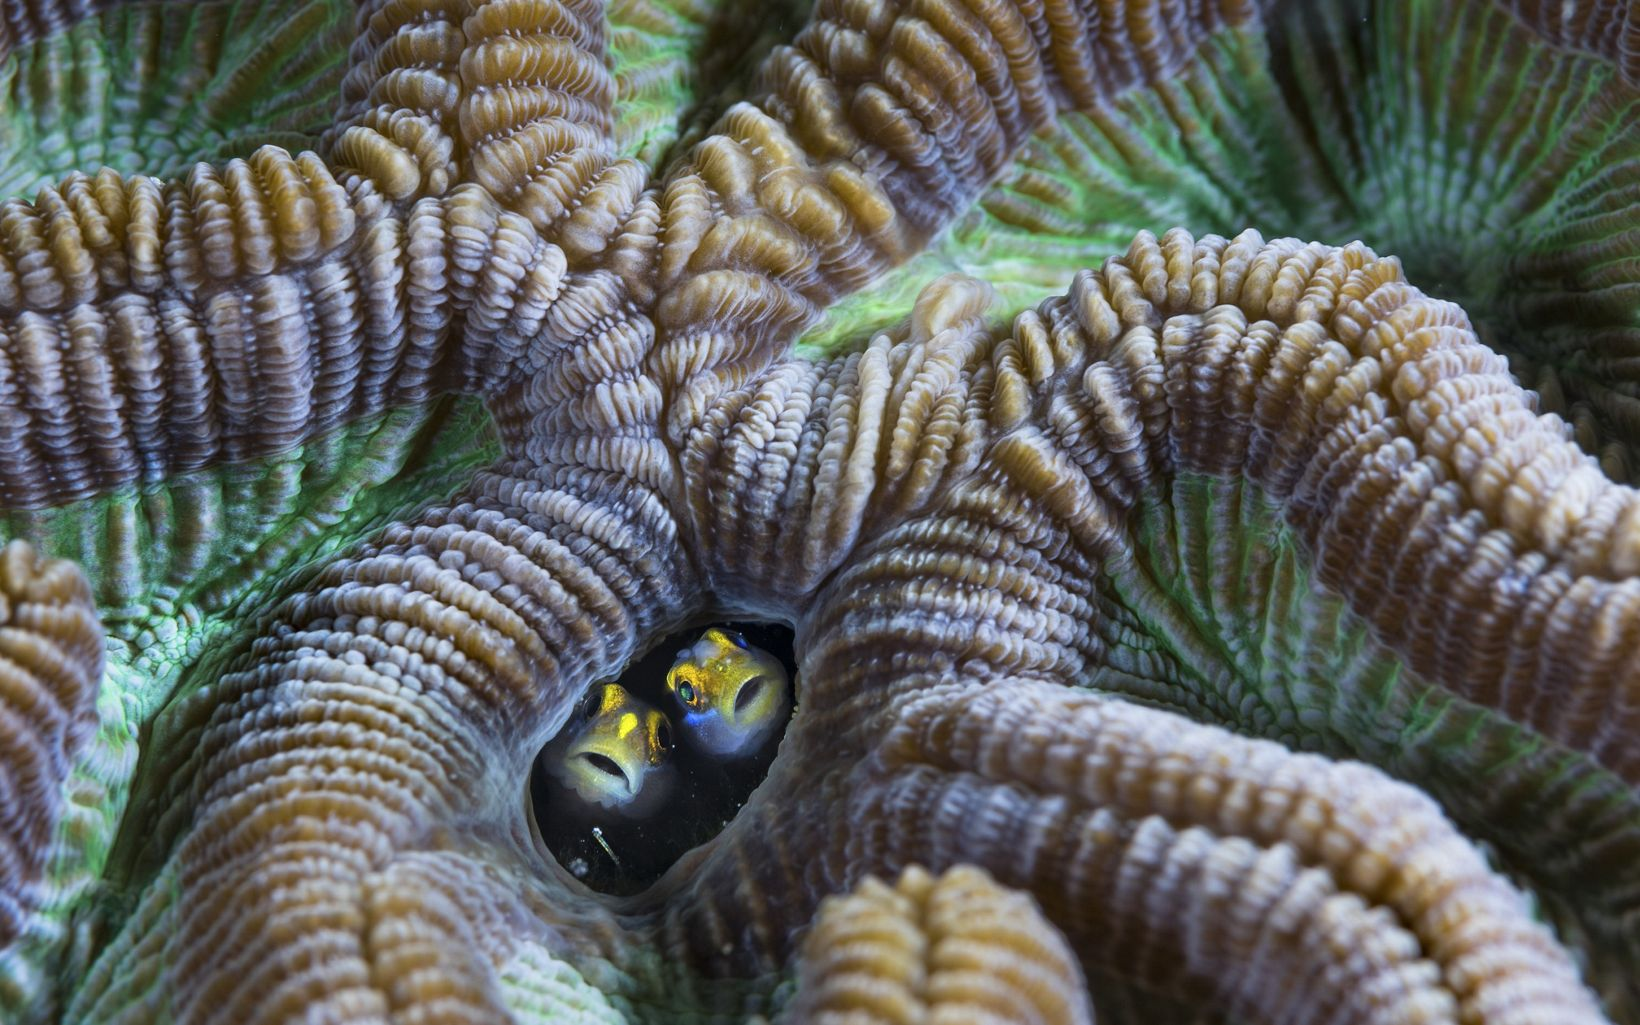 Two secretary blennies peak their heads out of a coral reef in Aruba.